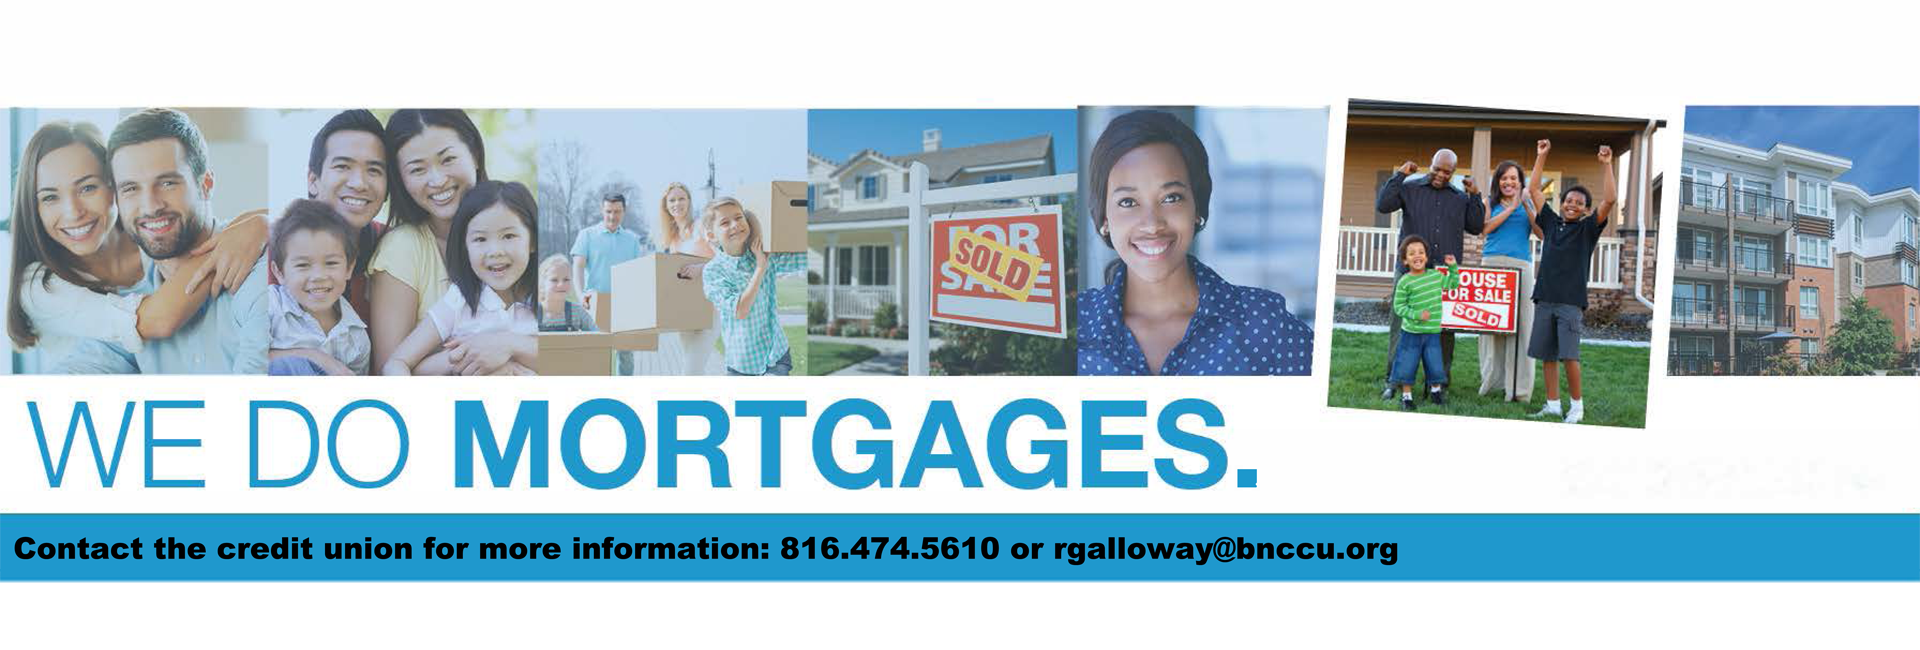 We do mortgages